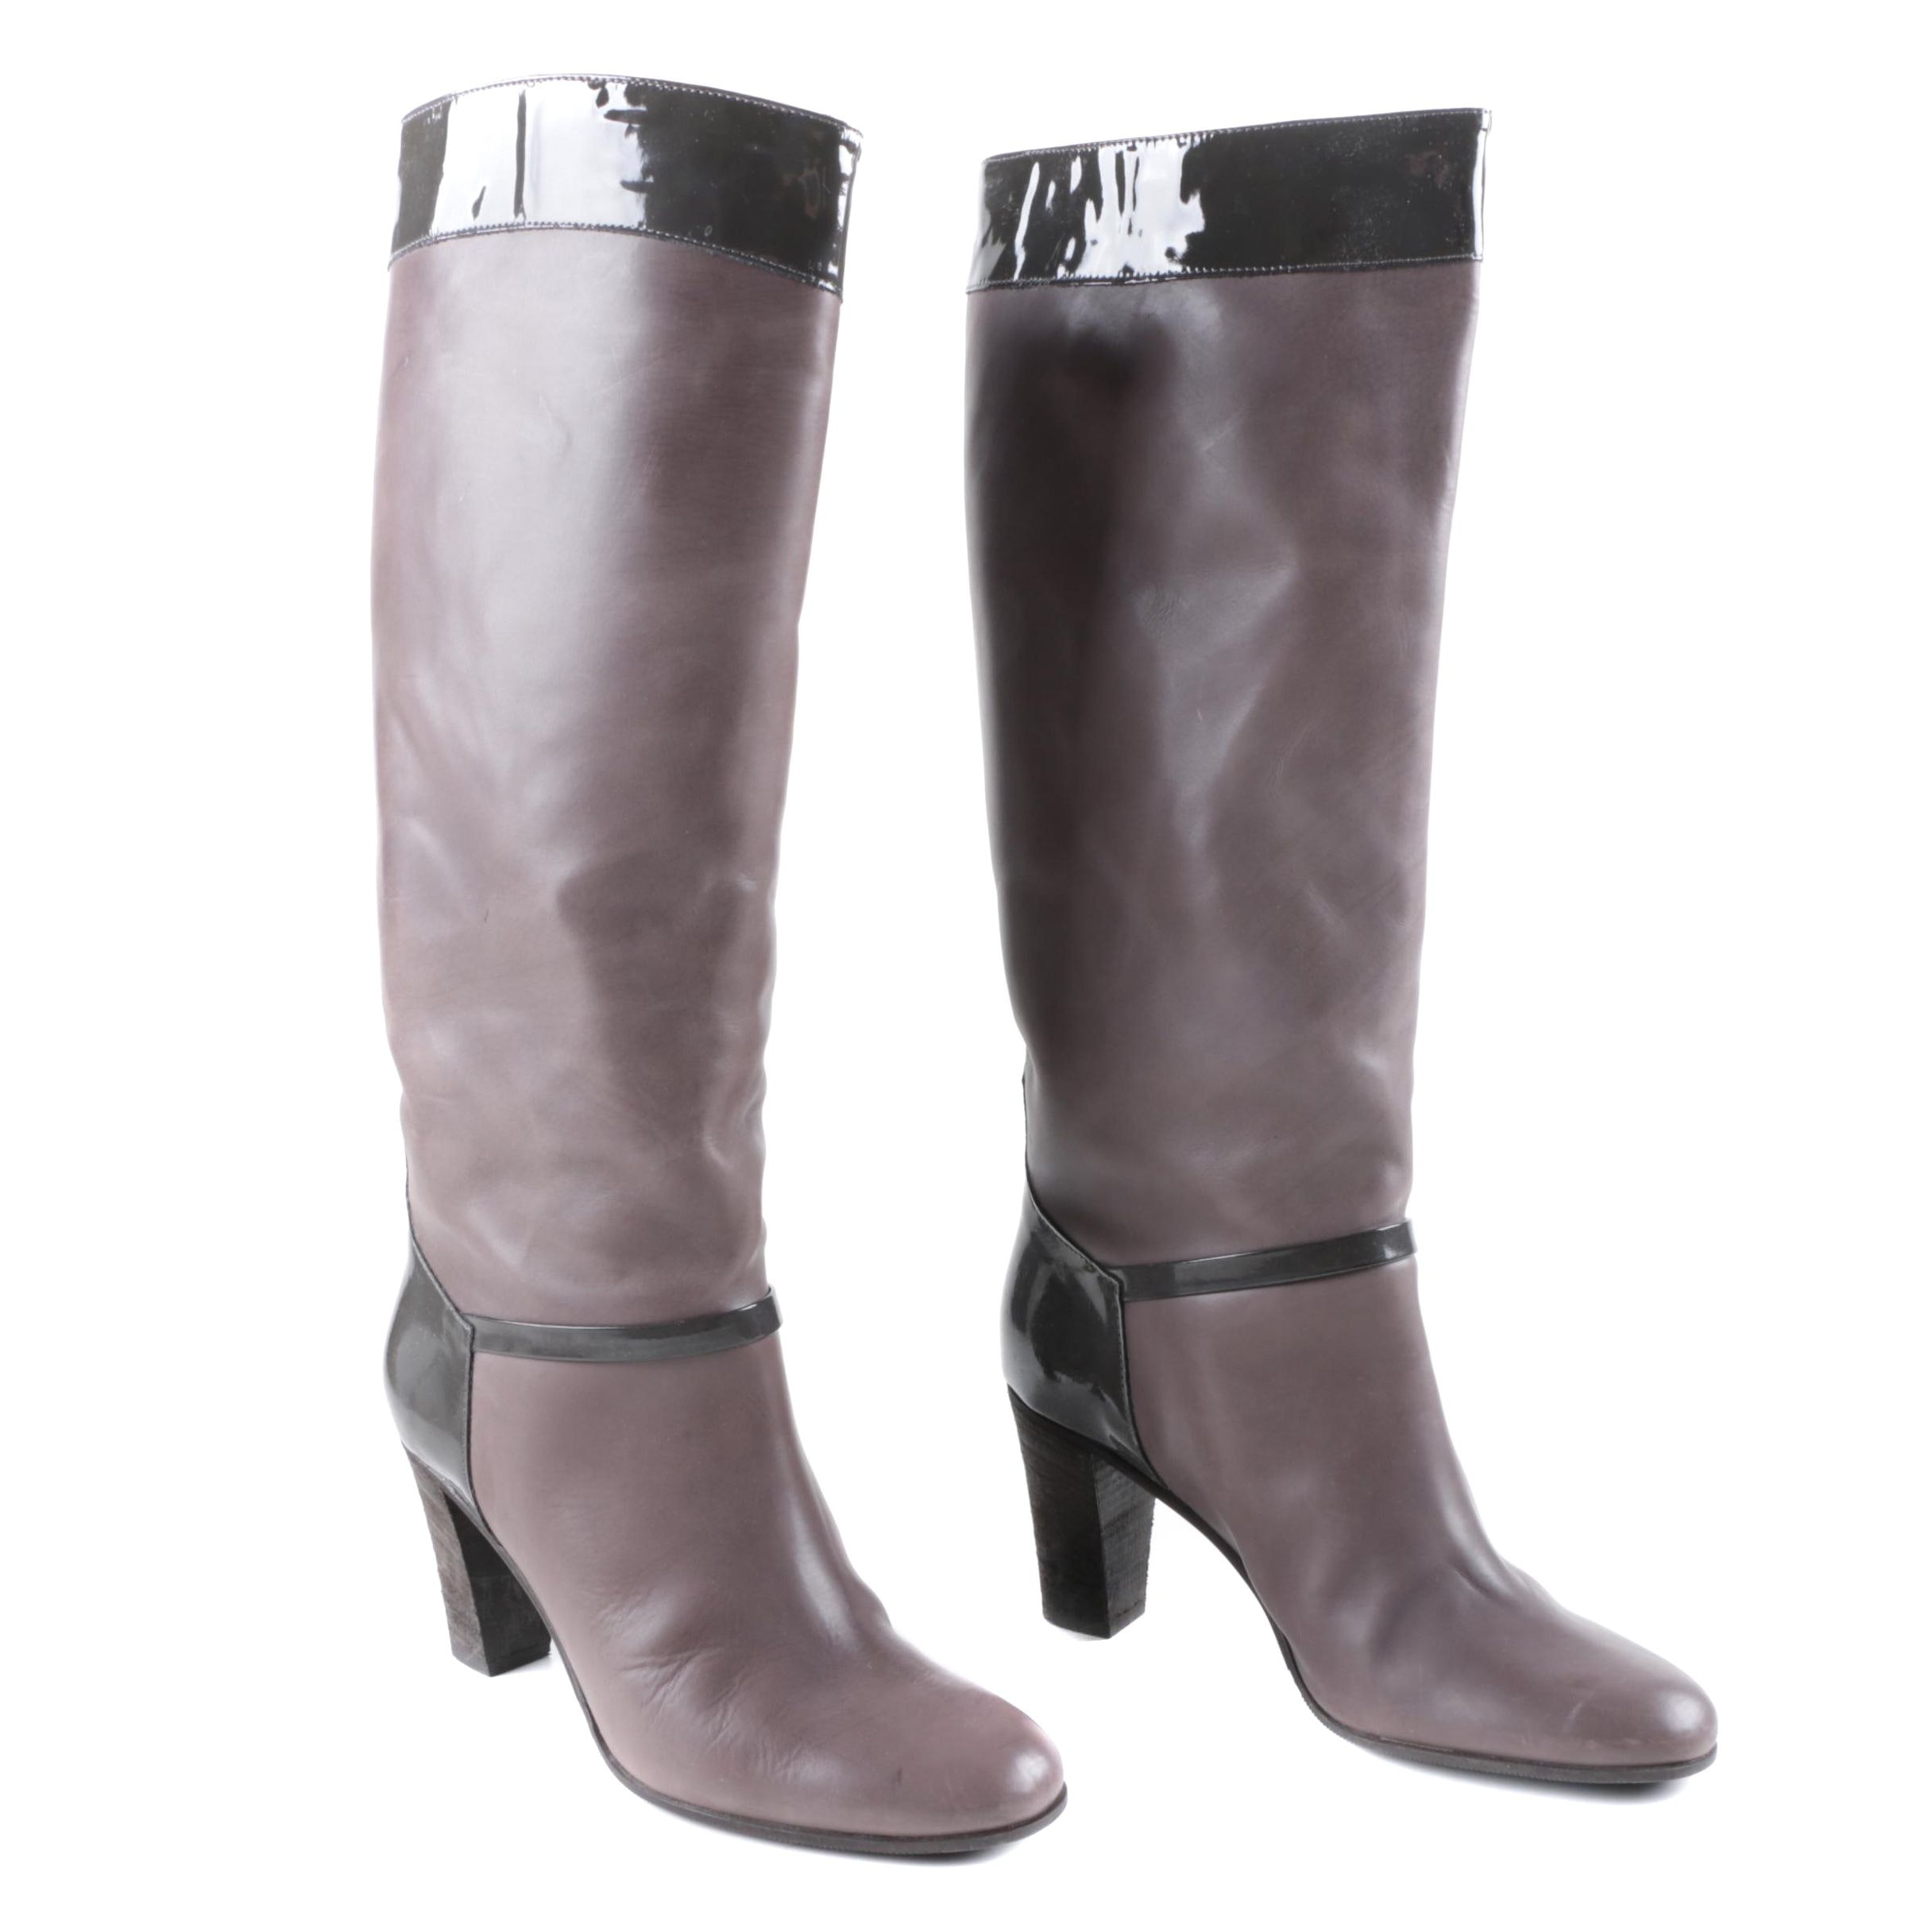 Women's J.Crew Taupe Leather High Heel Boots with Black Patent Leather Trim